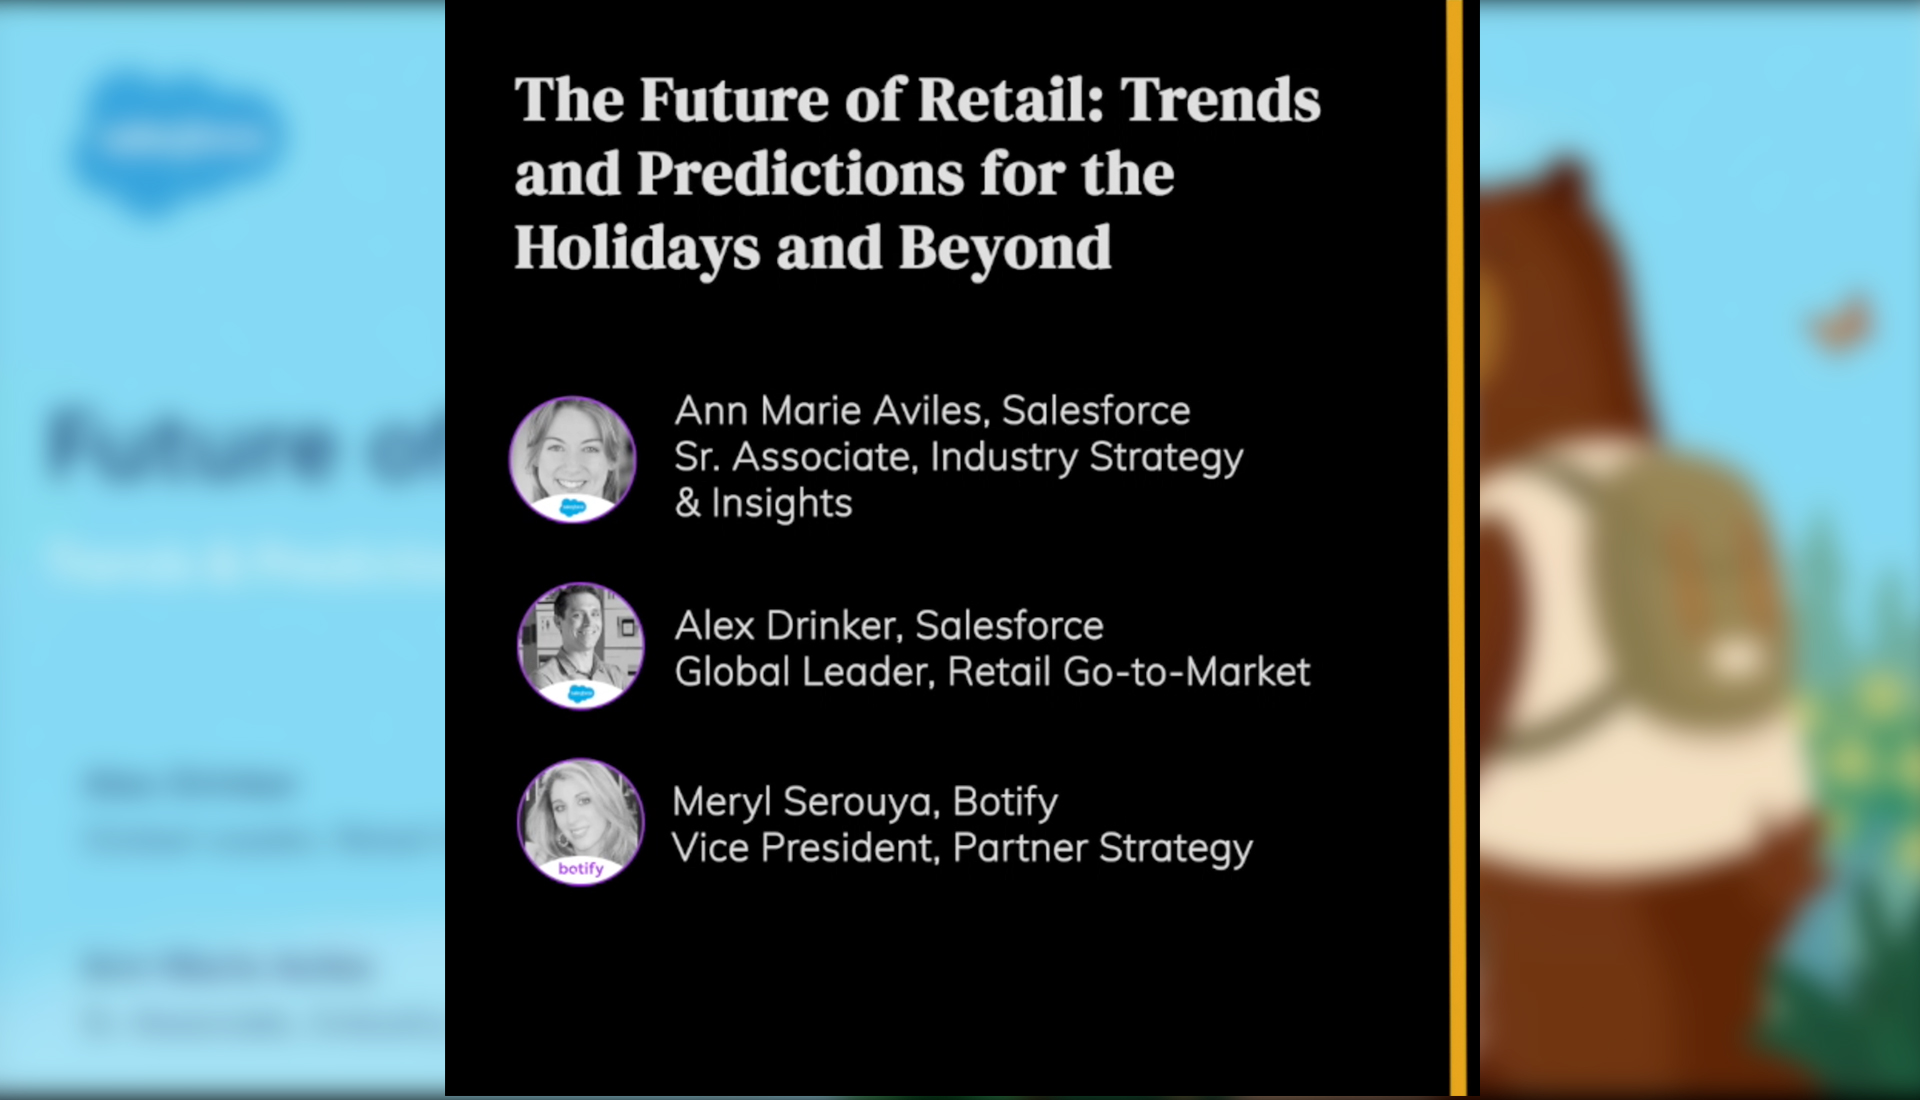 The Future of Retail: Trends and Predictions for the Holidays and Beyond